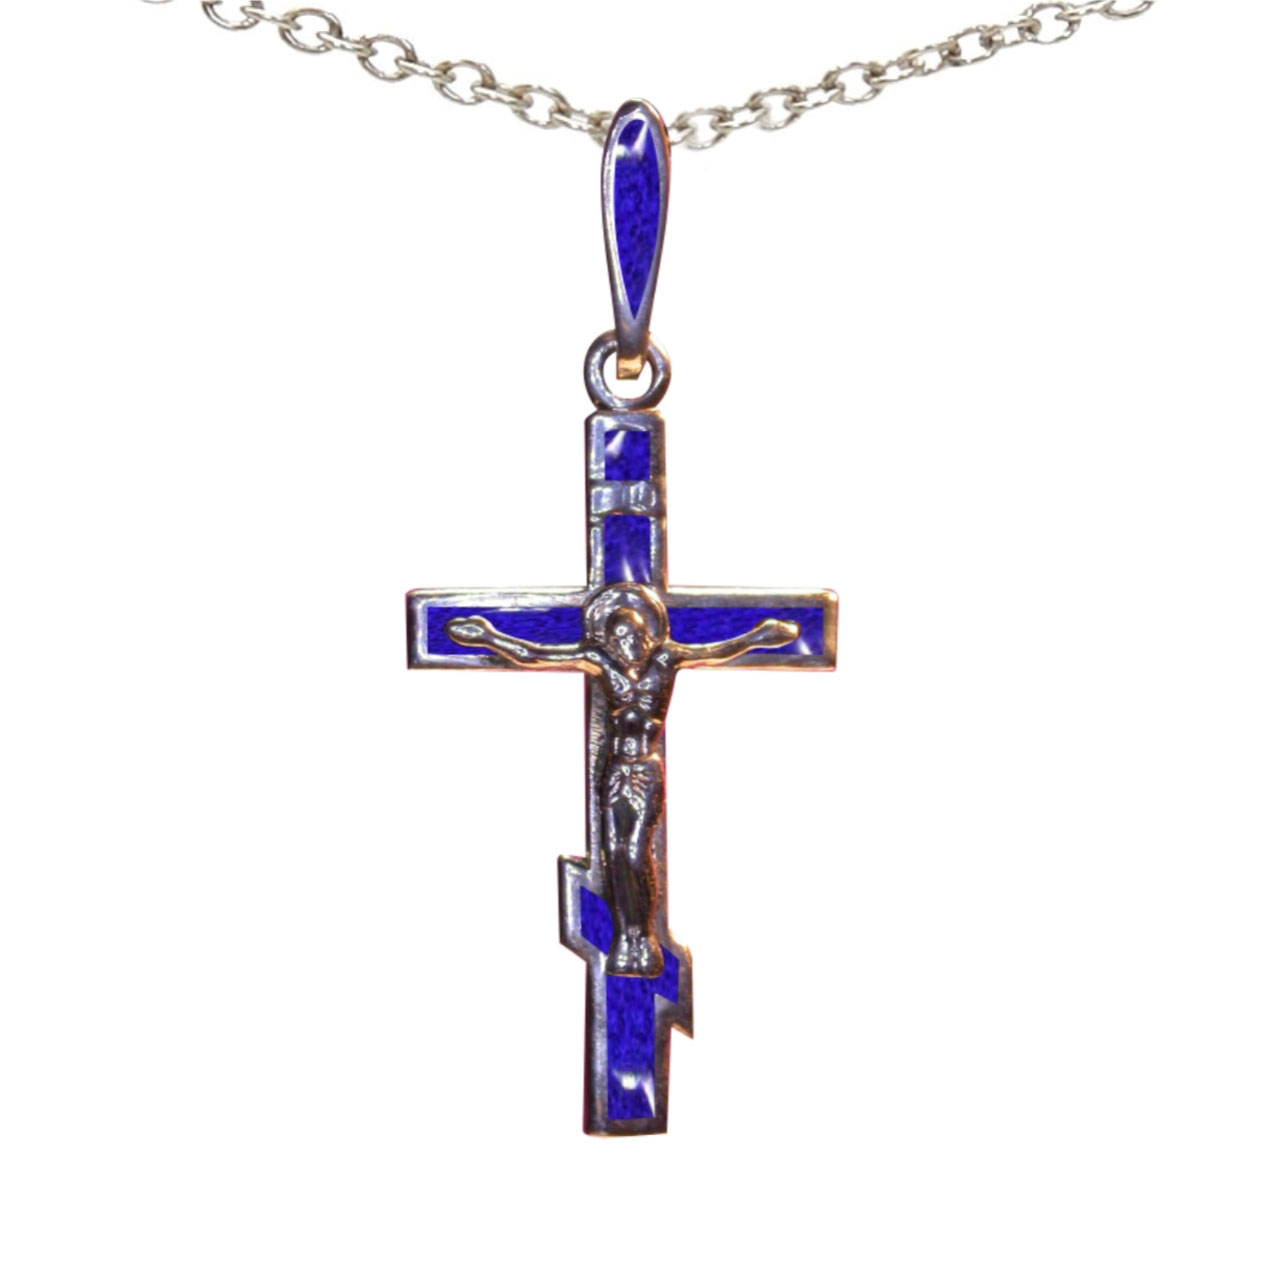 Silver Six-Pointed Orthodox Cross